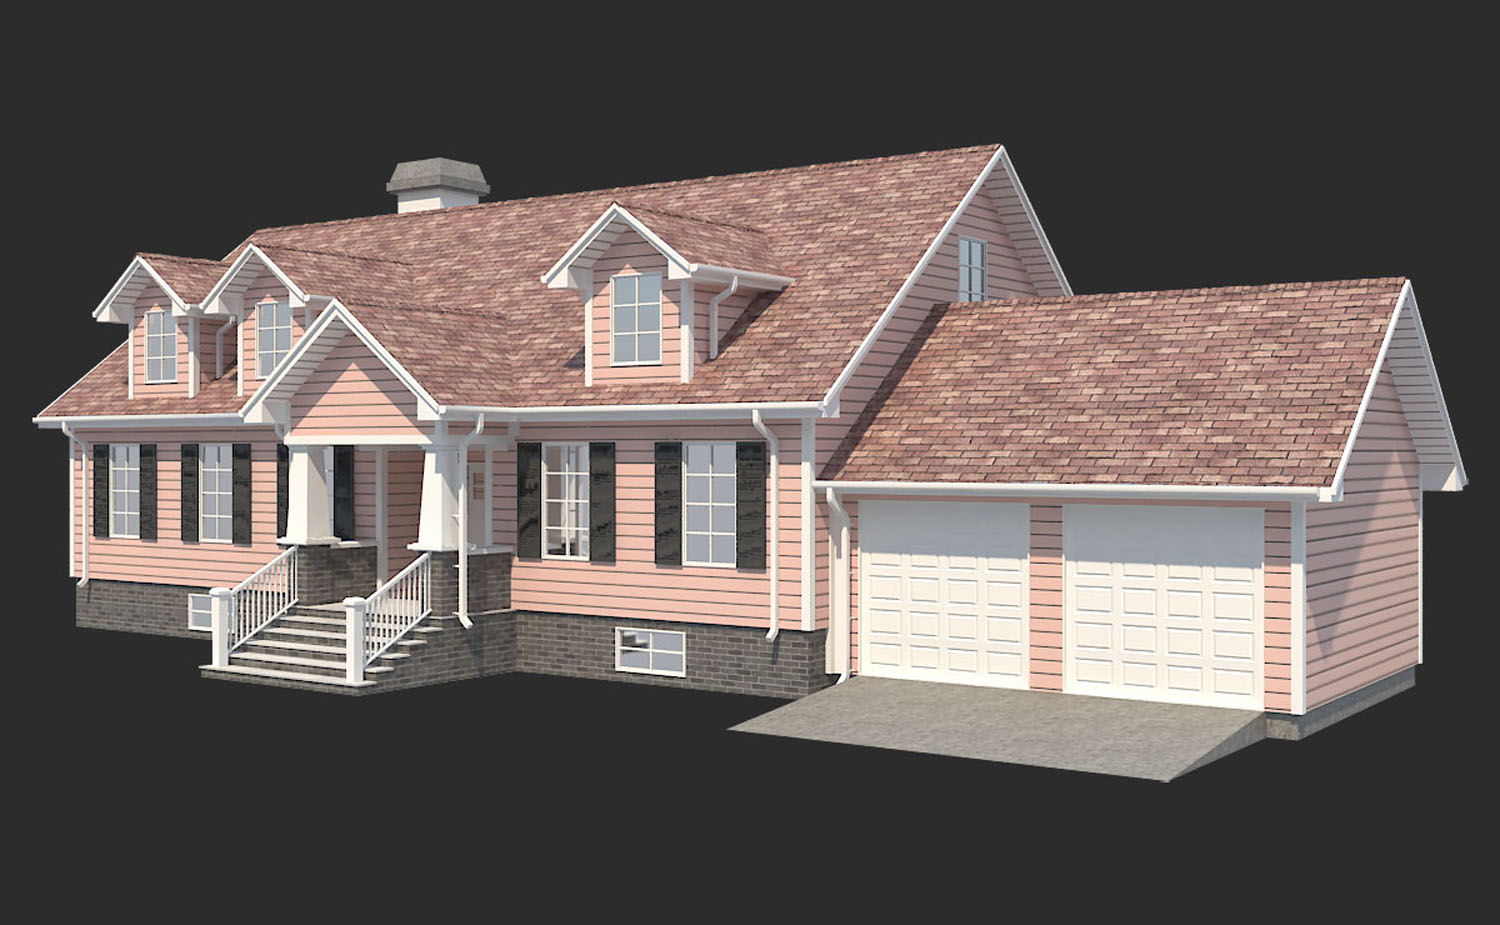 family ranch house 3d model 3ds max  fbx obj 270280